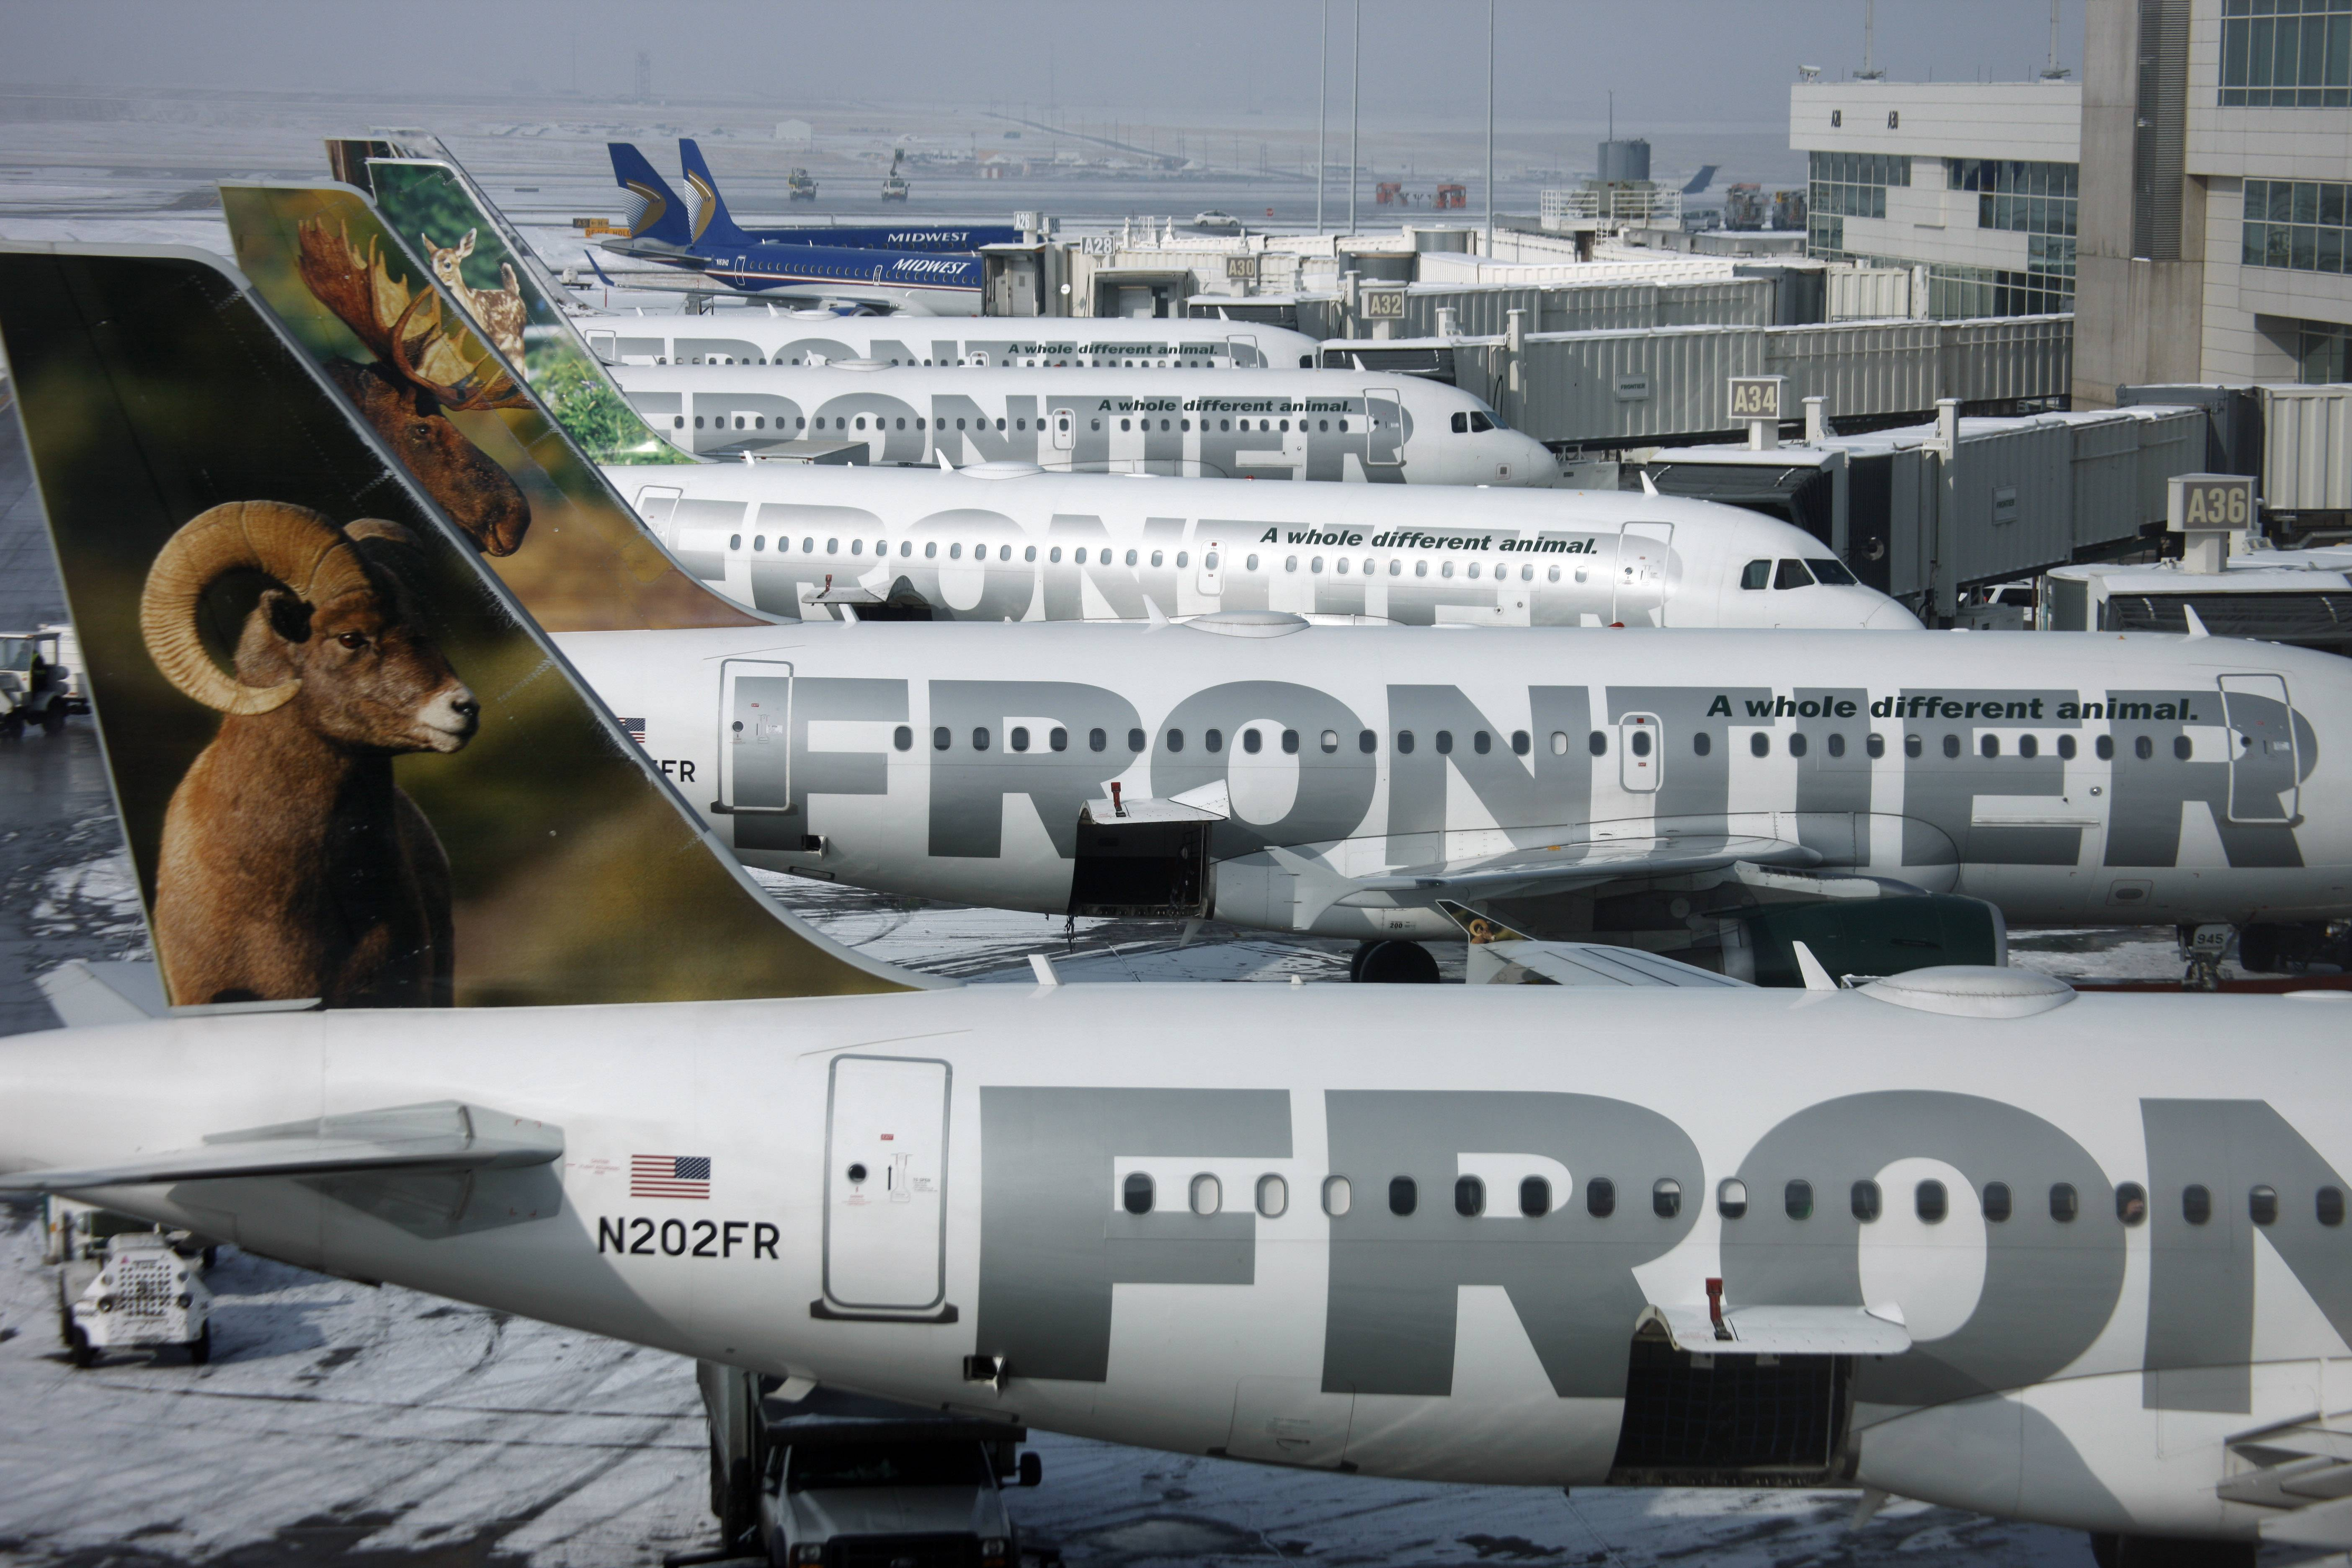 Passengers flying Frontier Airlines will now have to pay extra to place carry-on bags in overhead bins or for advance seat assignments.